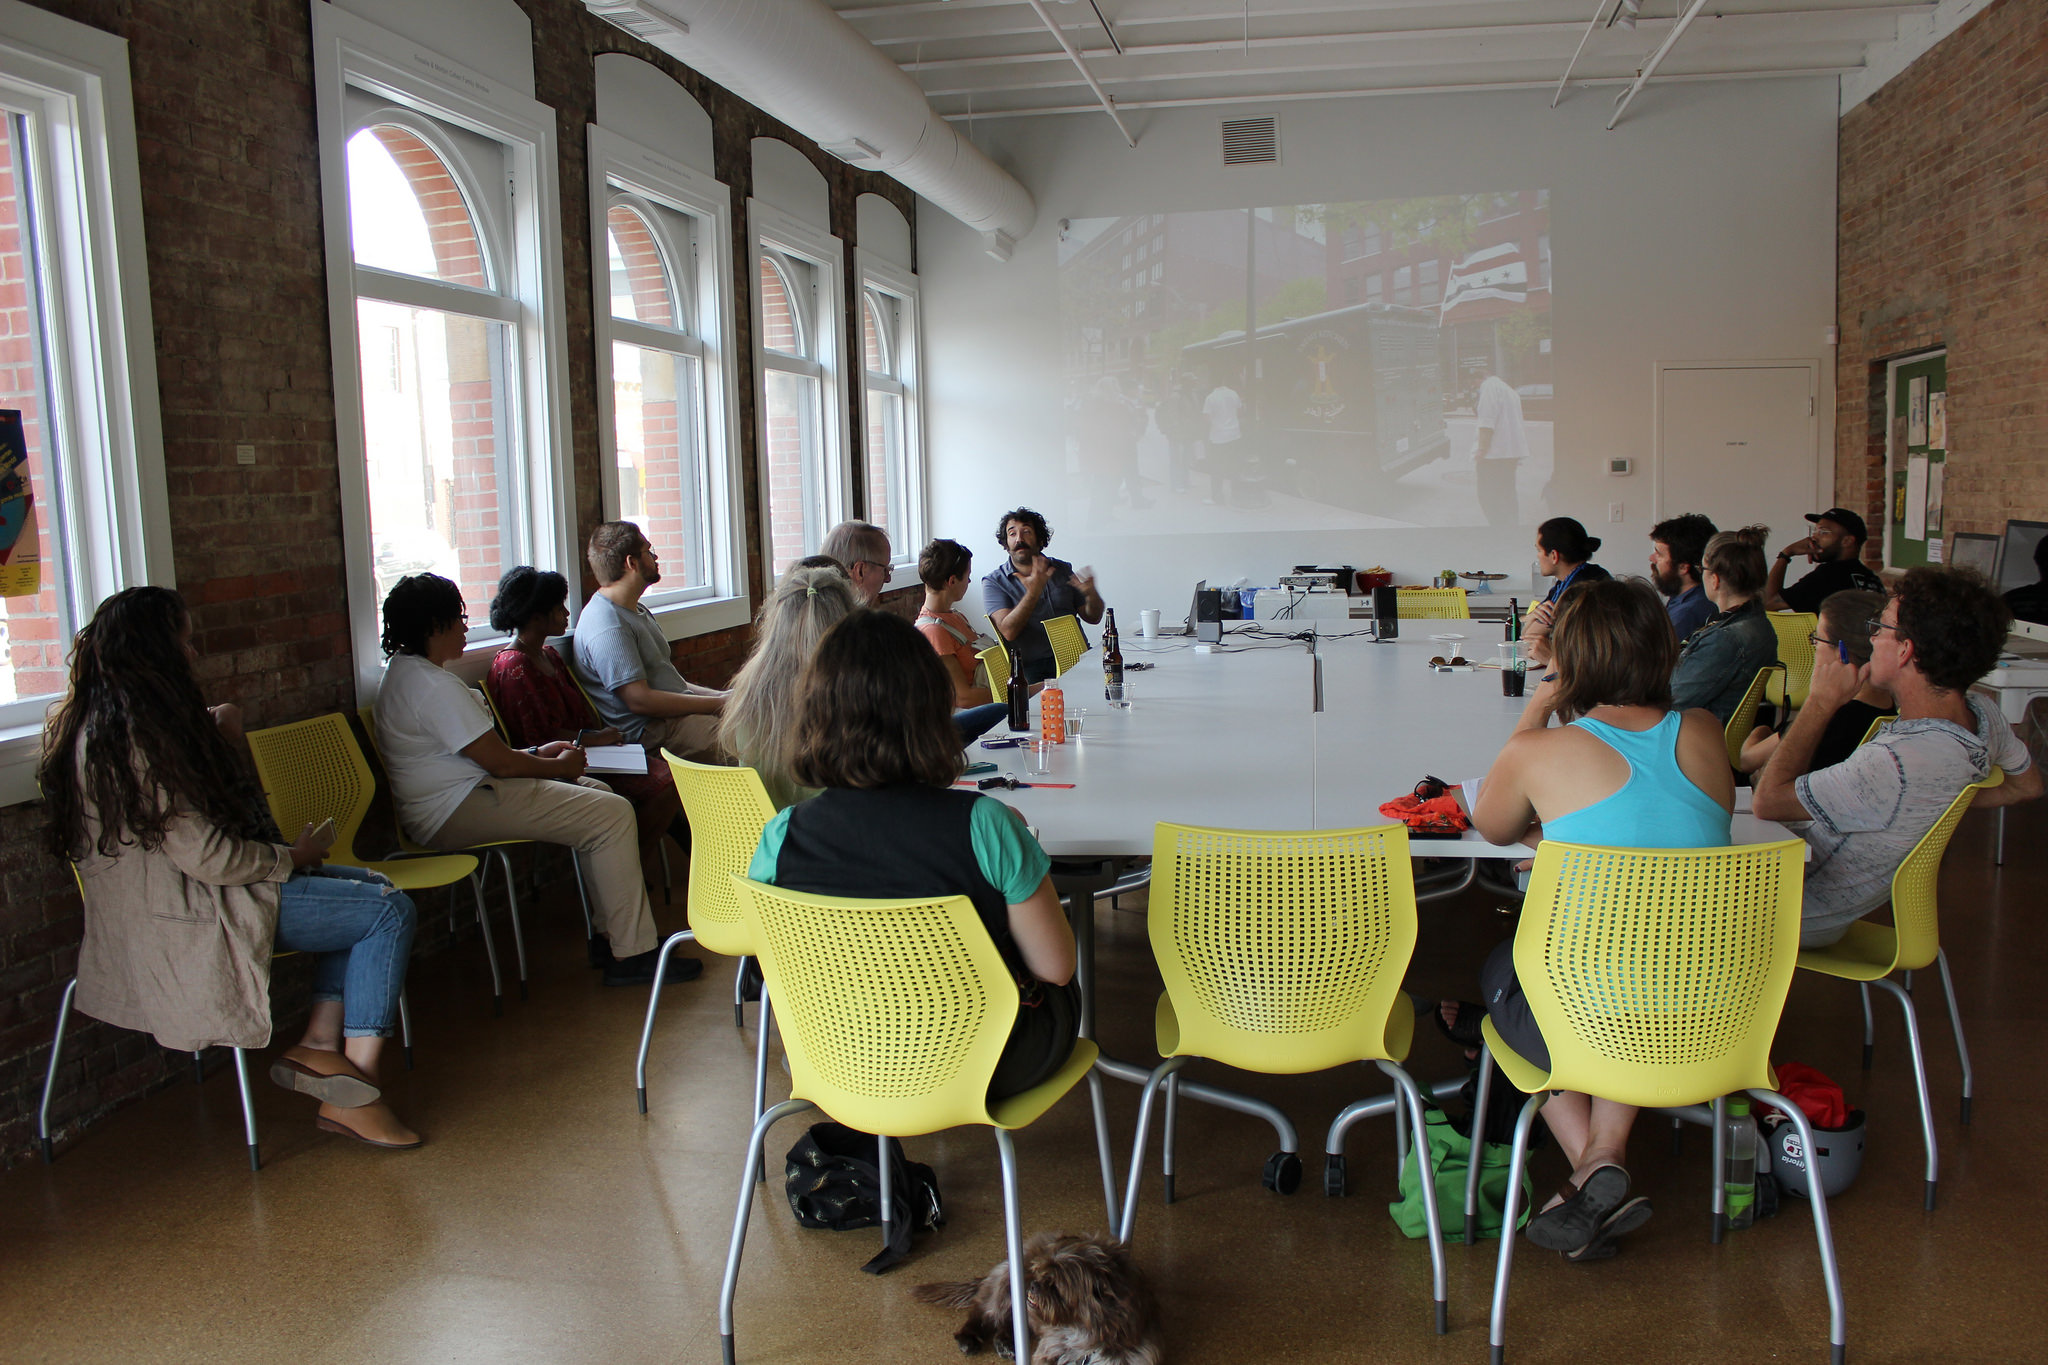 A Color Removed : Letter Writing Workshop at SPACES.Image courtesy of SPACES.